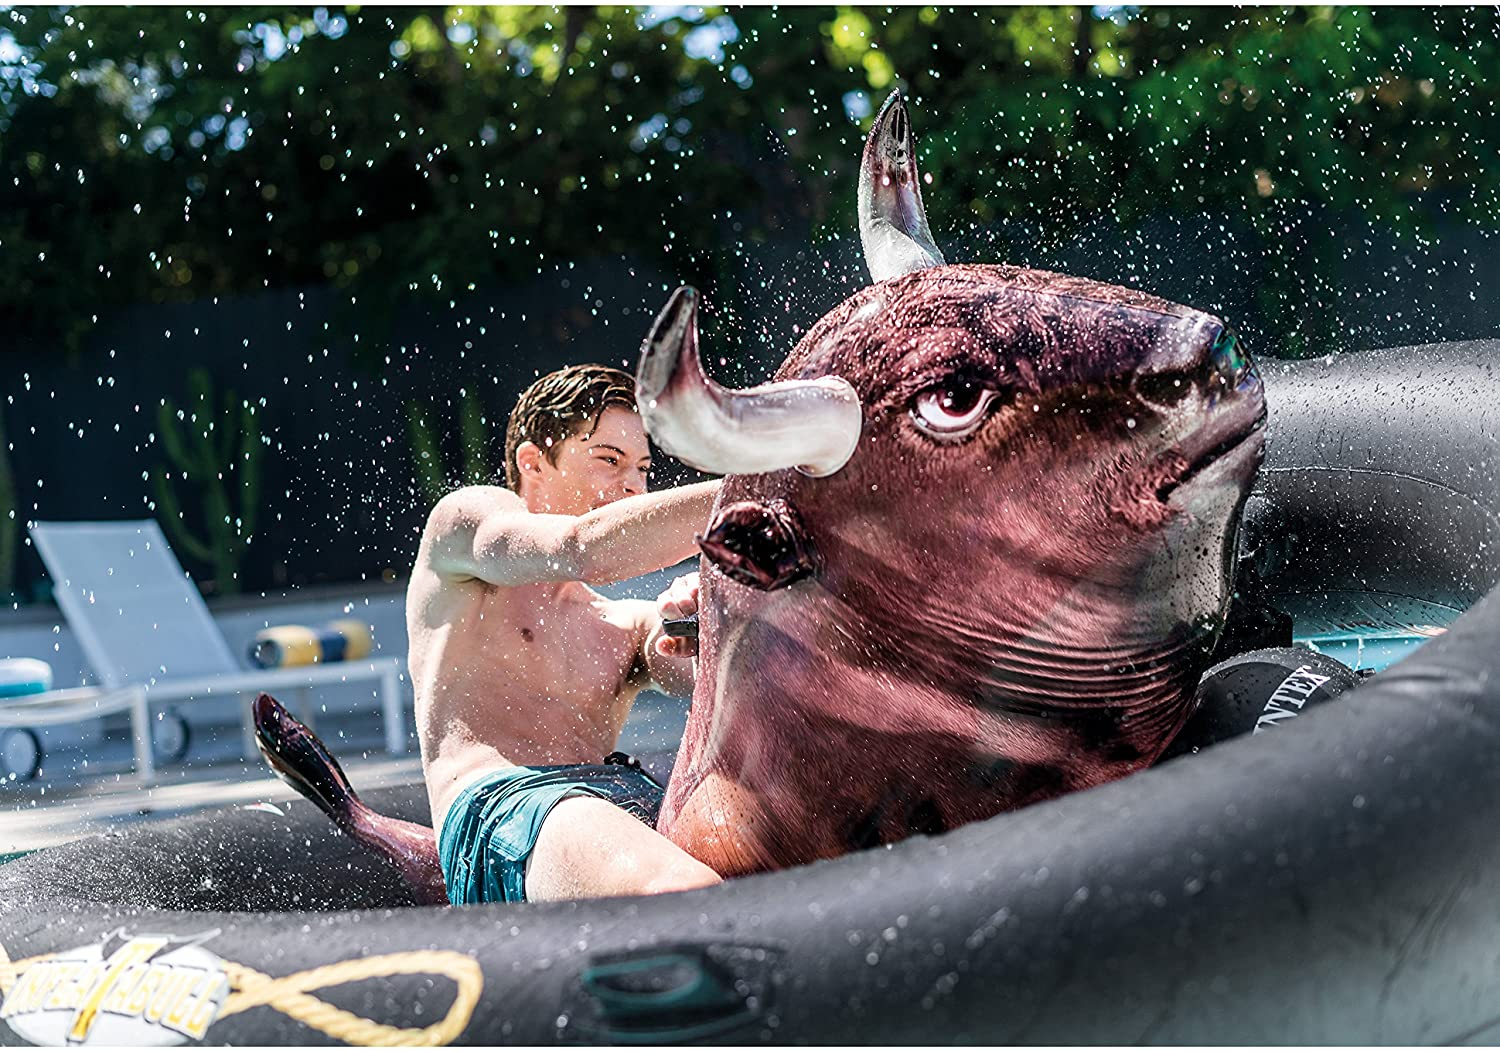 """Intex Inflat-A-Bull, Inflatable Ride-On Pool Toy with Realistic Printing, 94"""" X 77"""" X 32"""", for Ages 9+"""